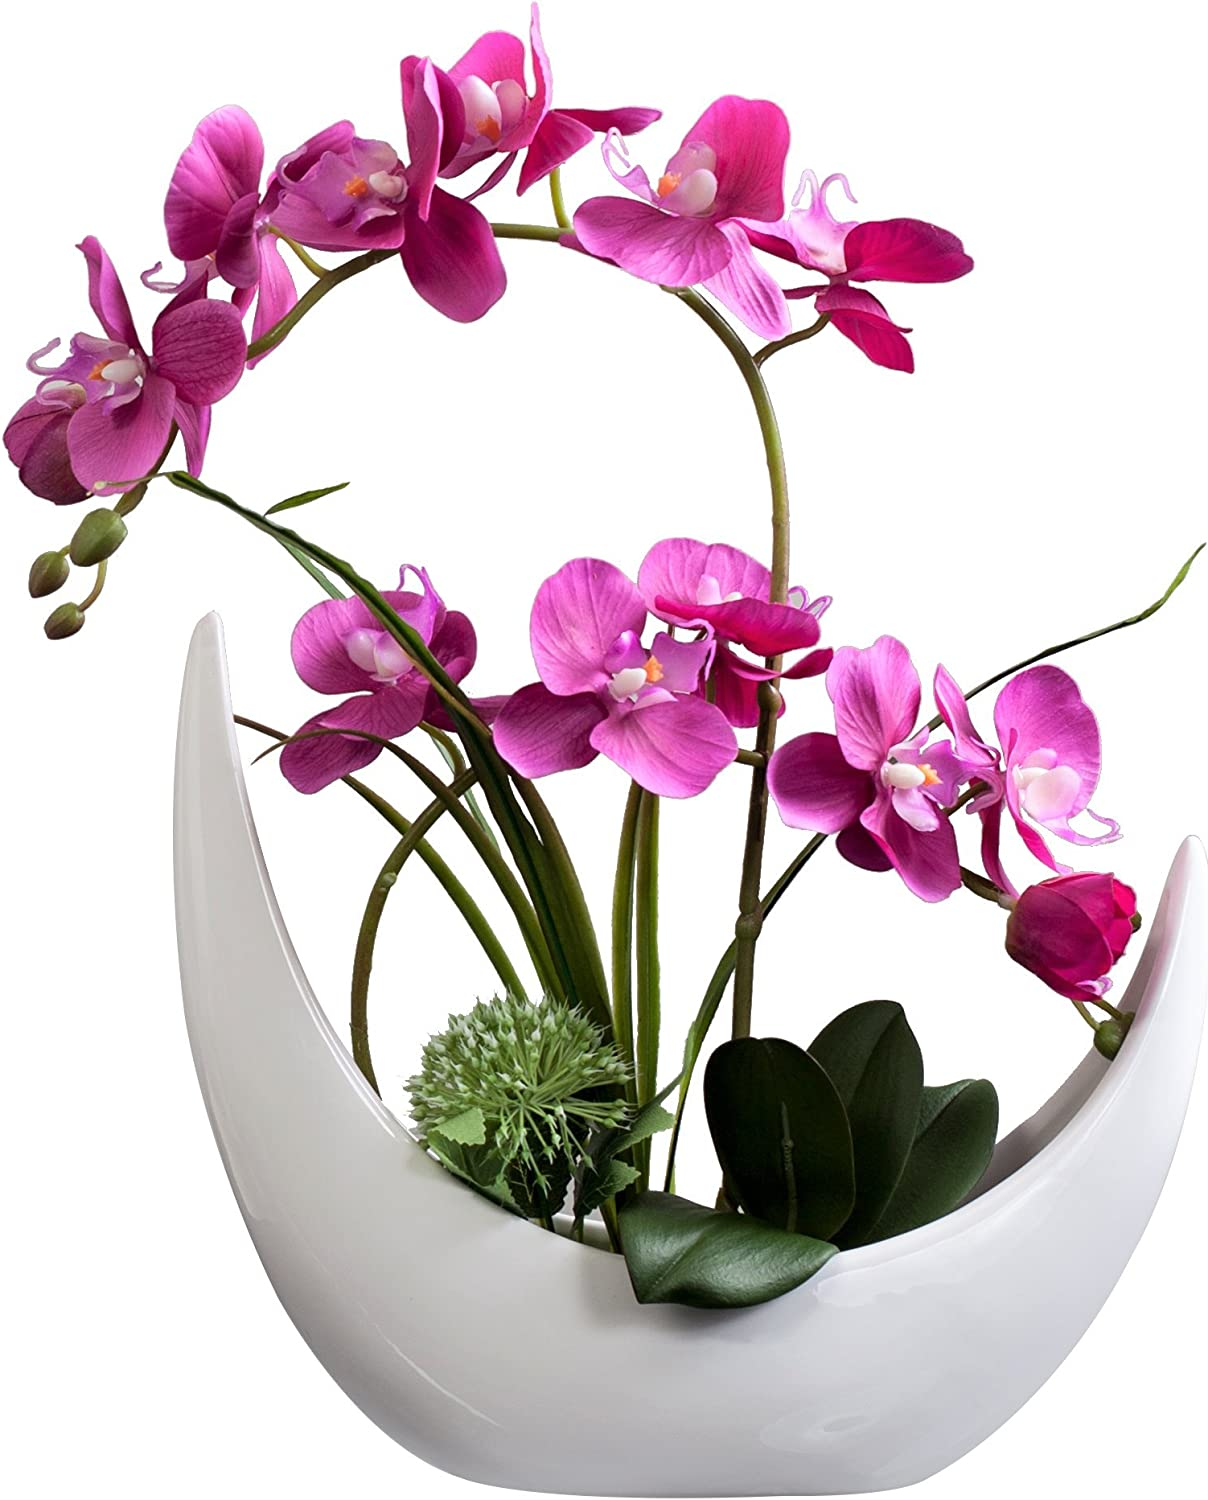 White Phalaenopsis Orchid Wedding Centerpieces in the Crescent Vase